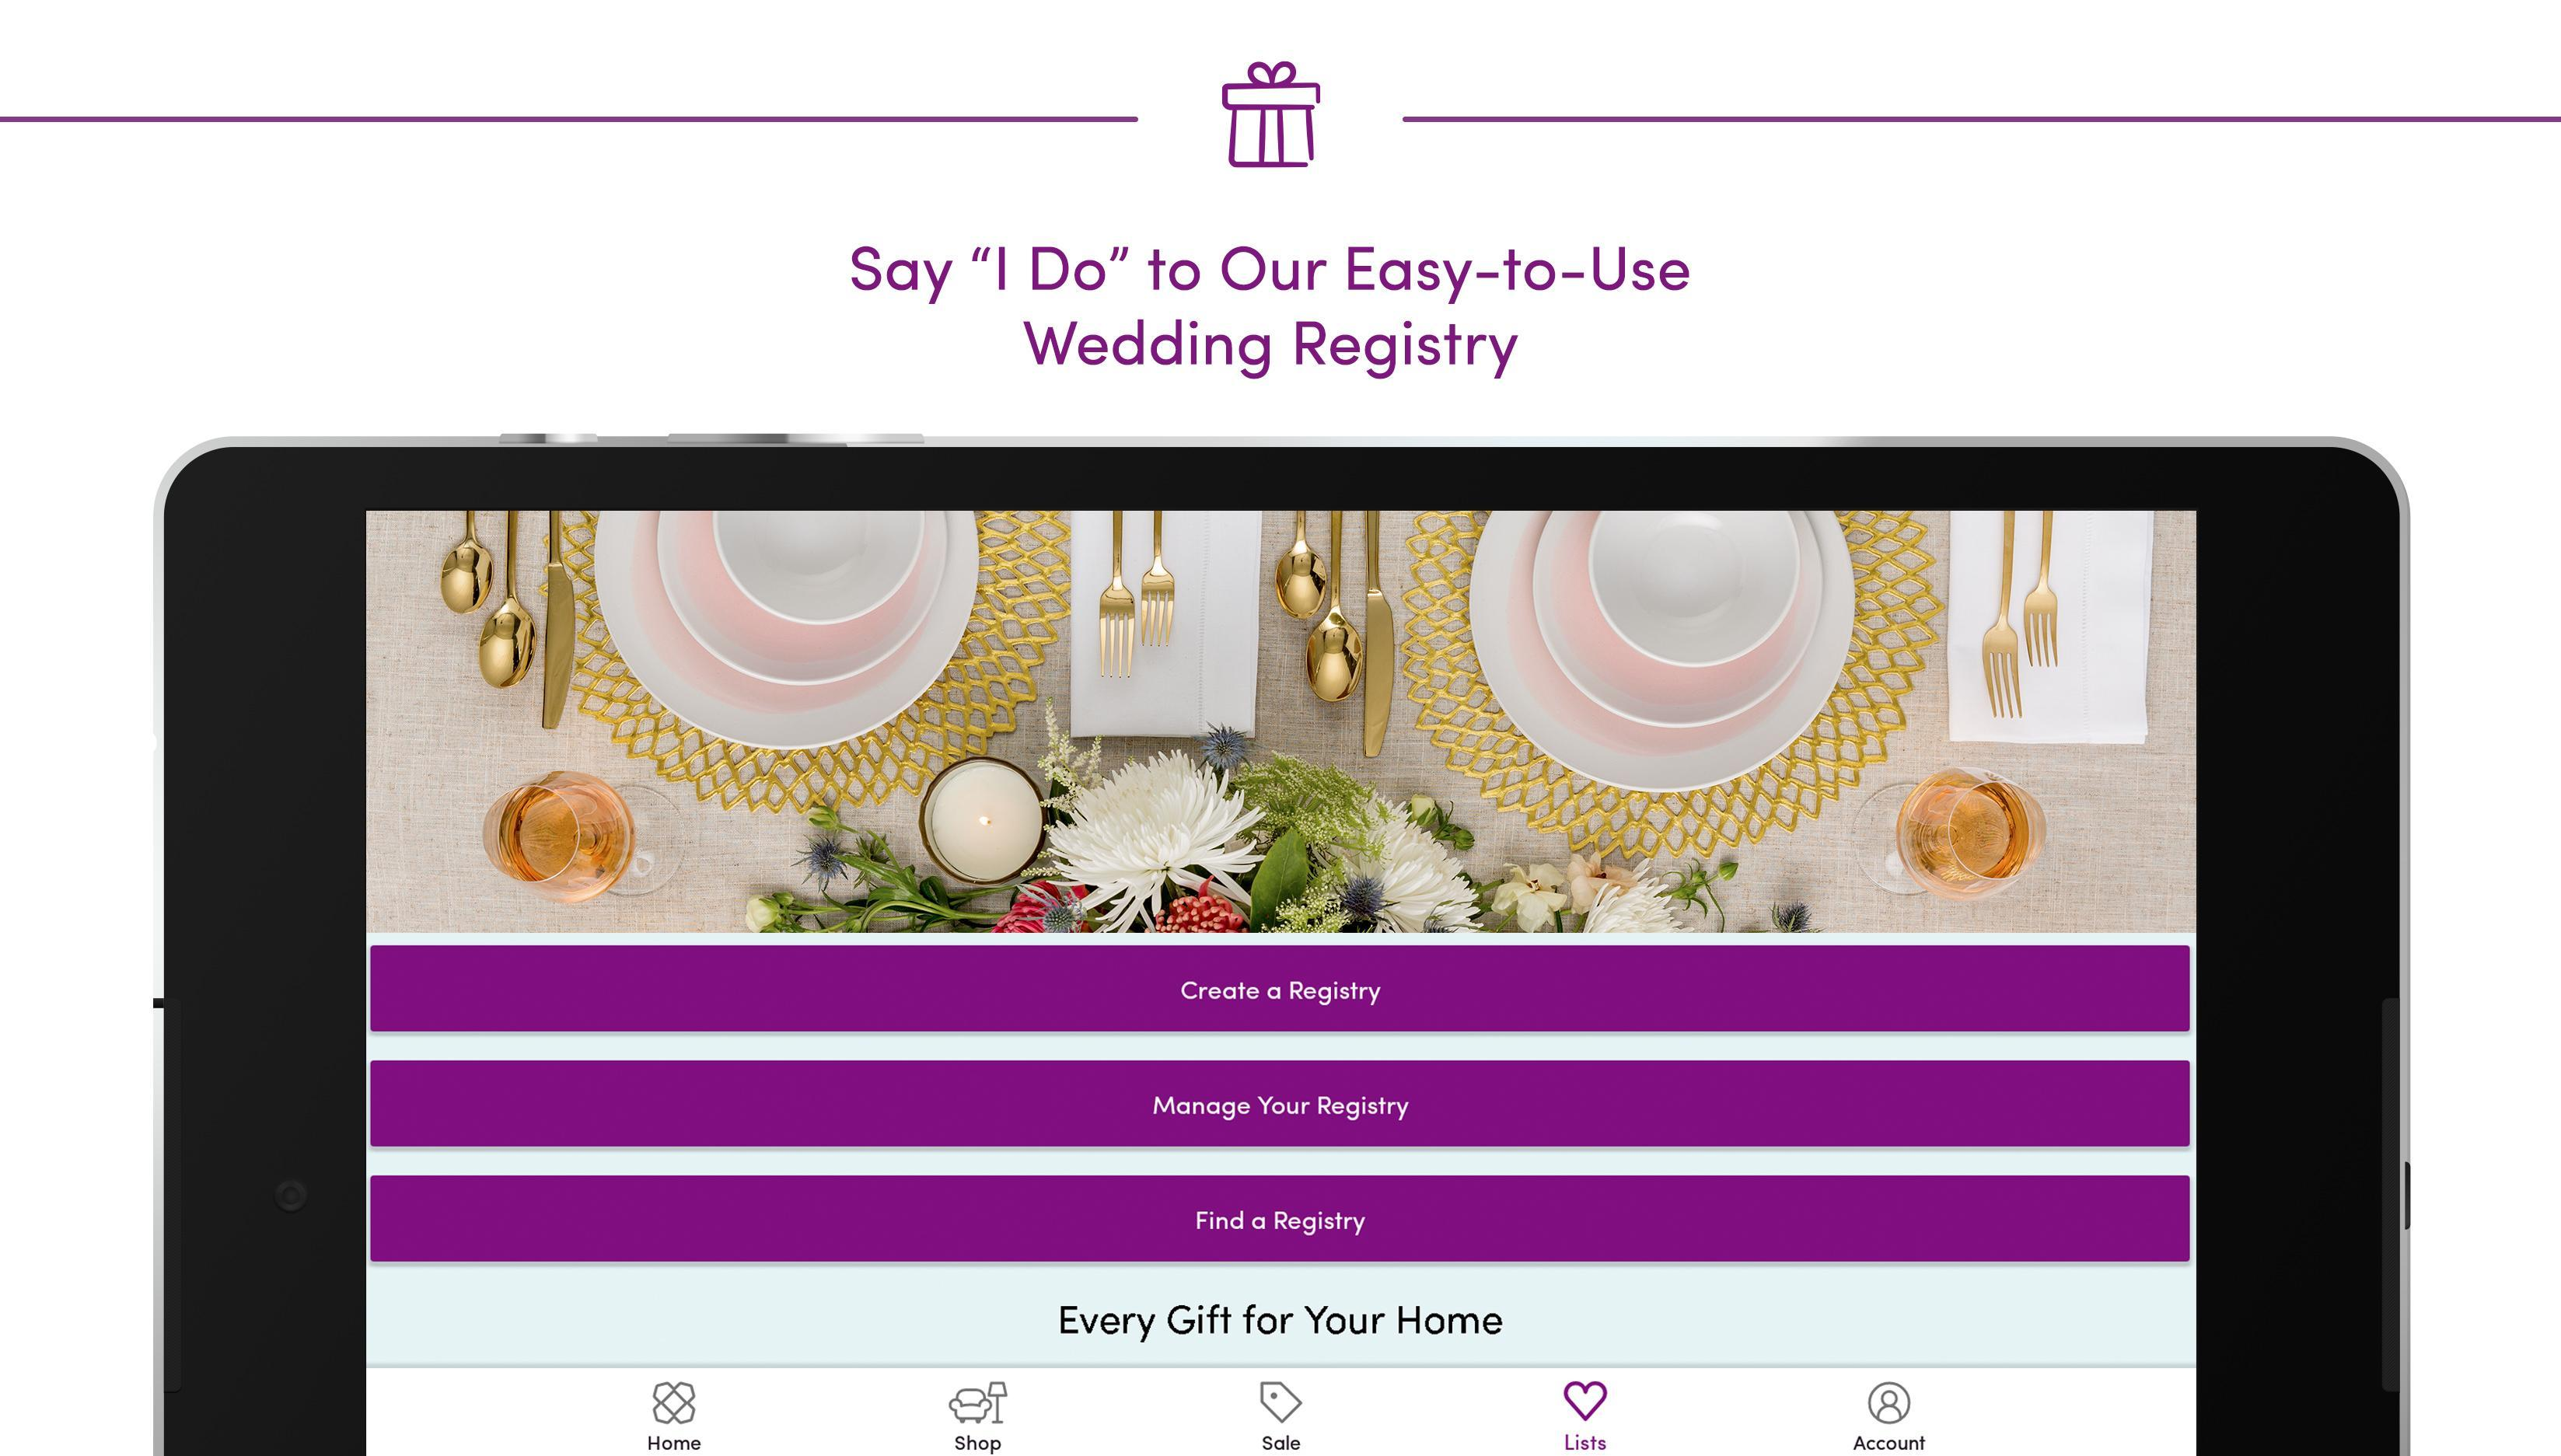 Wayfair Shop All Things Home 5.2.4 Screenshot 10